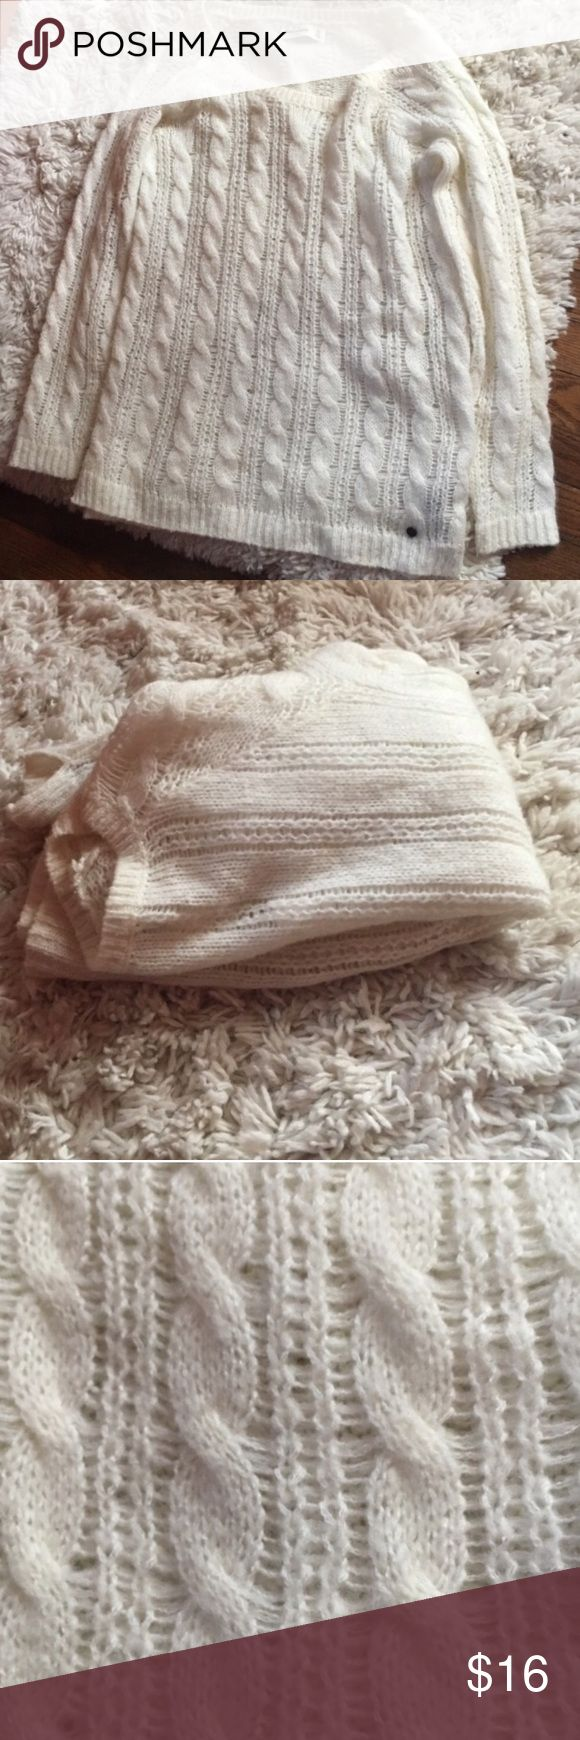 Abercrombie Kids White Long Cable Knit Sweater EUC.No rips or stains. Abercombie Kids Shirts & Tops Sweaters